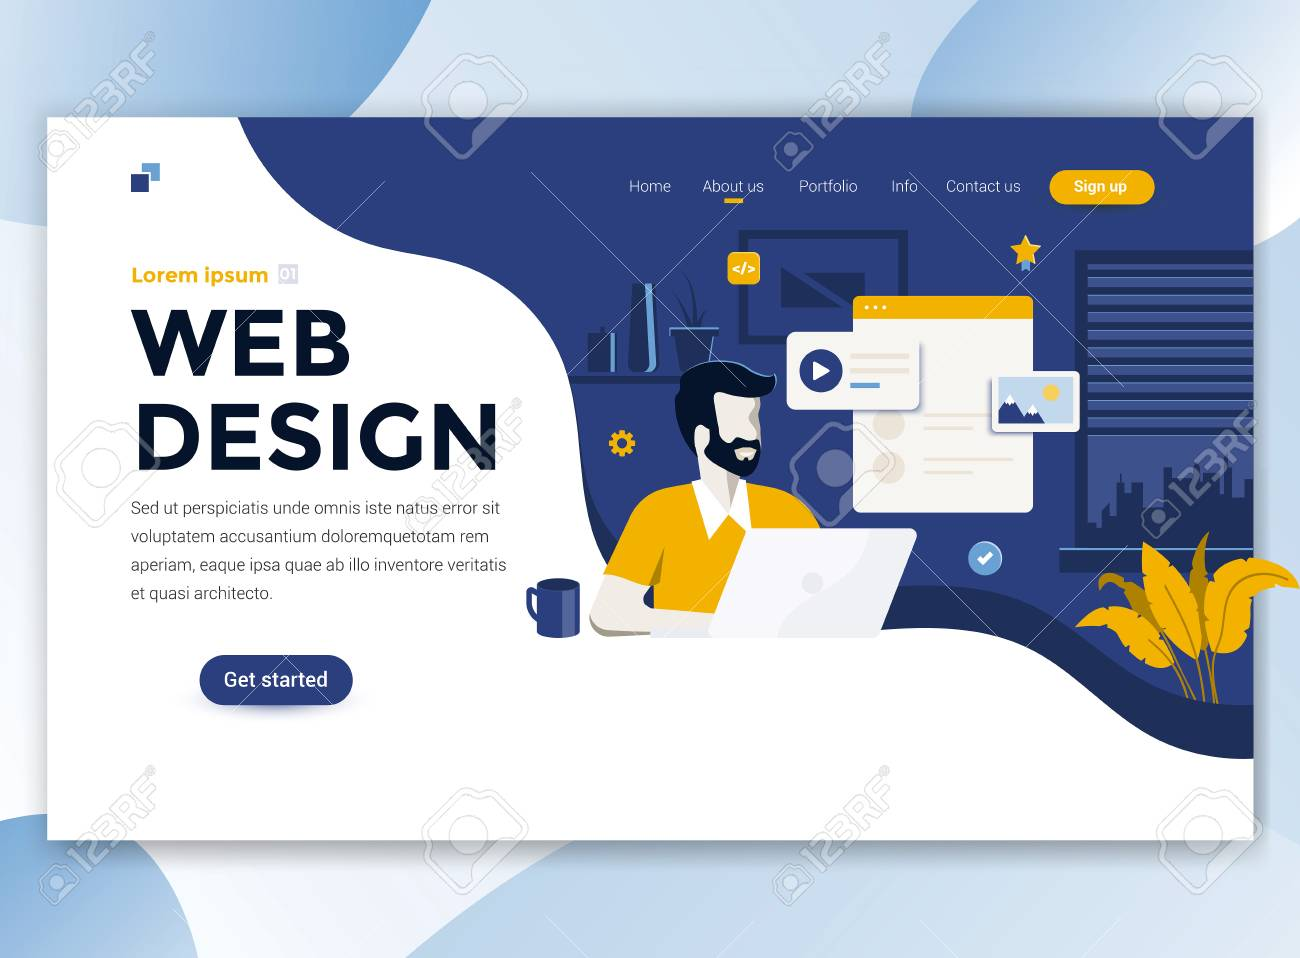 Landing Page Template Of Web Design Modern Flat Design Concept Royalty Free Cliparts Vectors And Stock Illustration Image 110267002